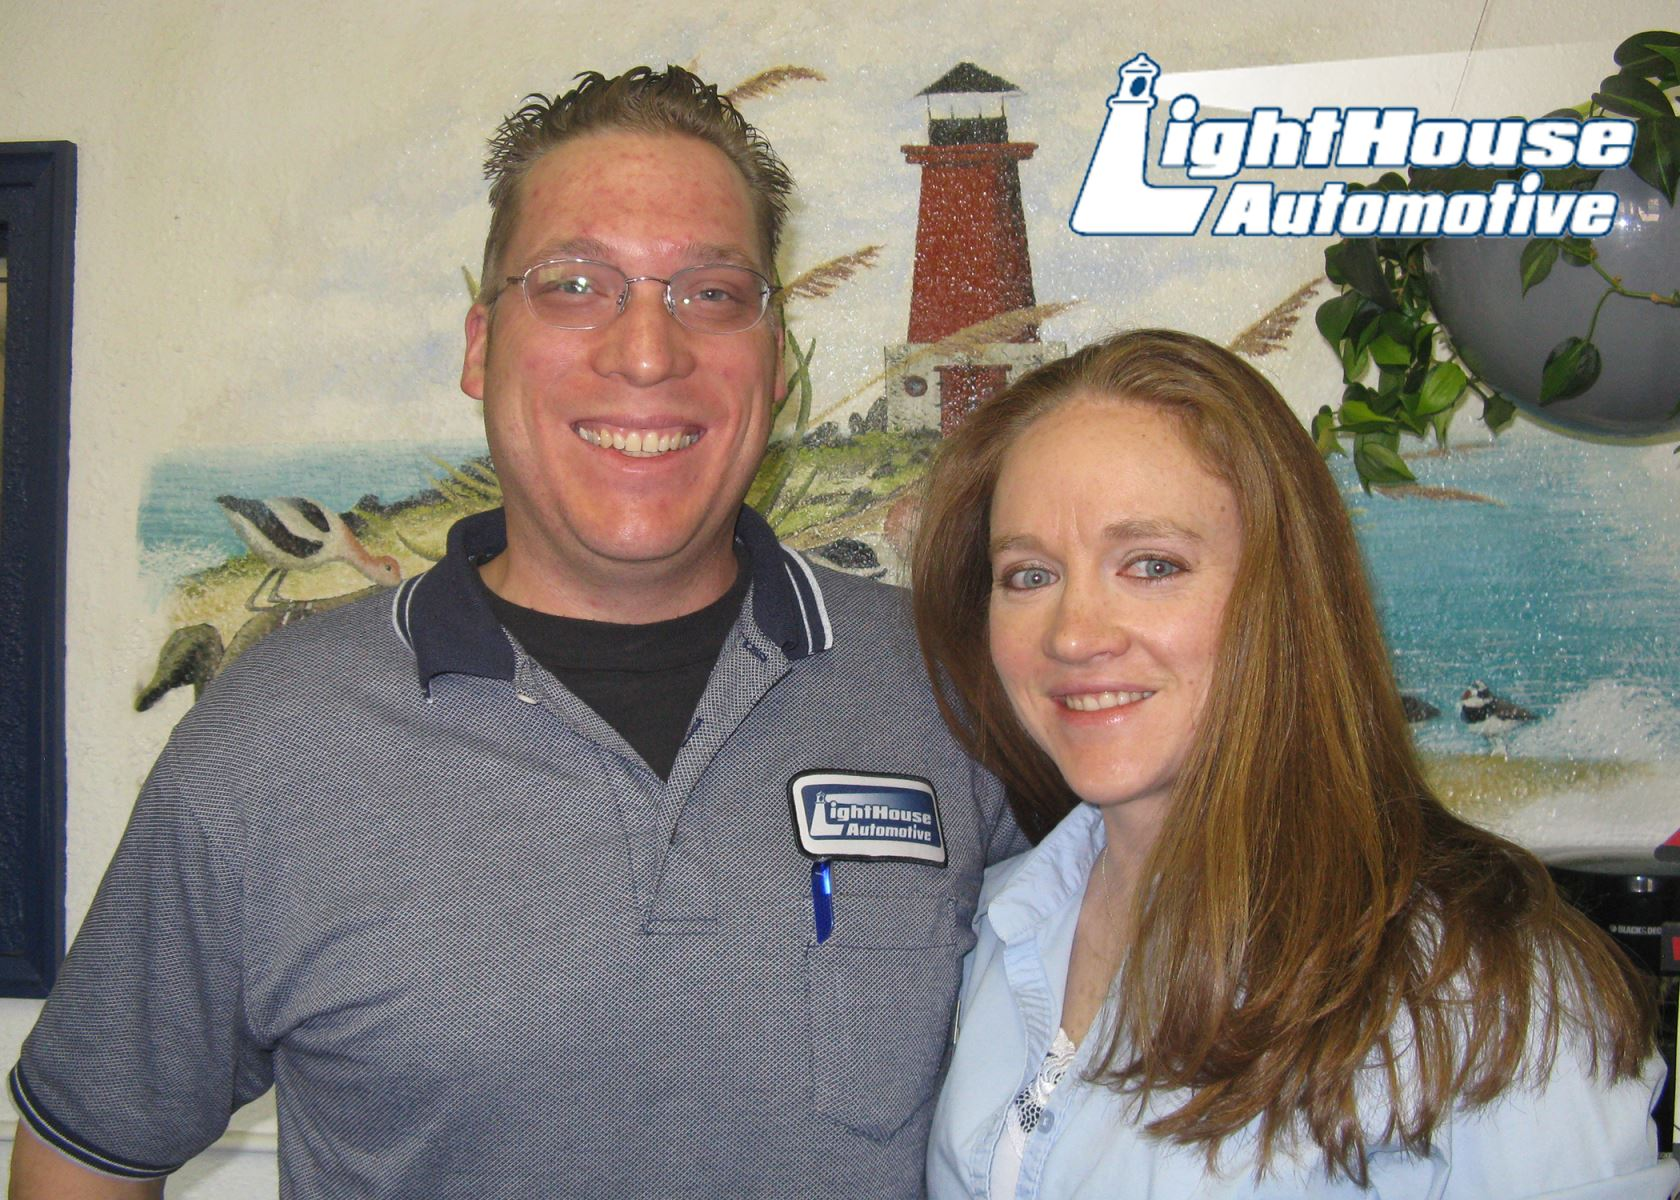 Customer Turns to LightHouse Automotive for Second Opinion on Auto Repairs